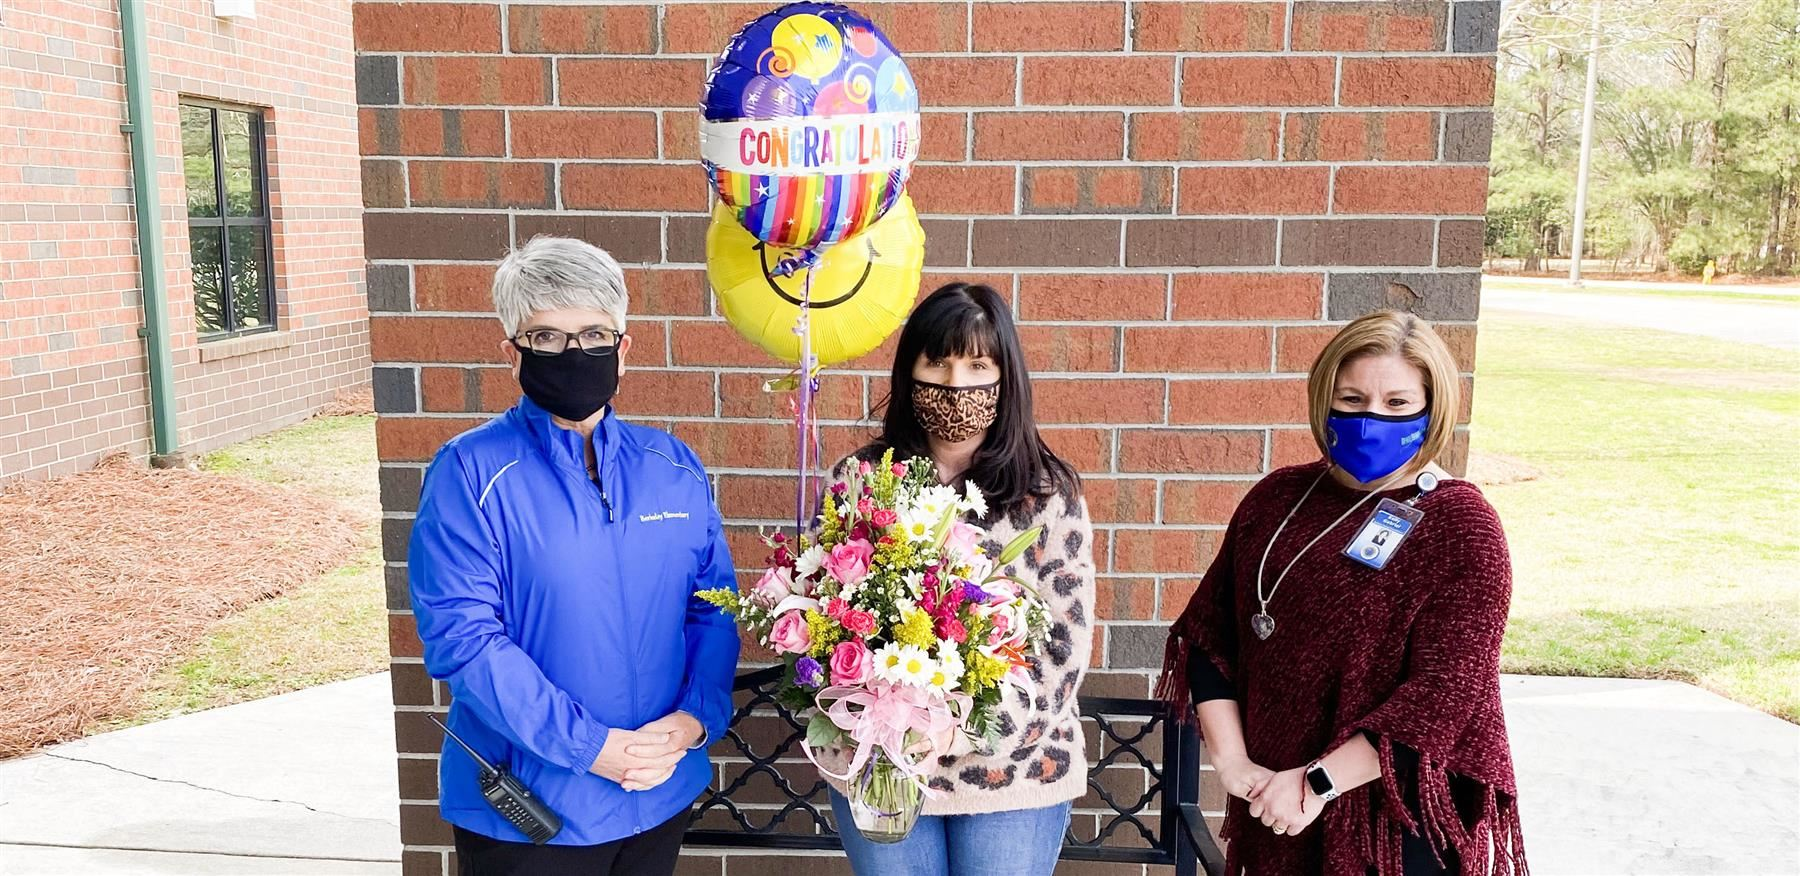 Stephanie Lafferty named BES Teacher of the Year